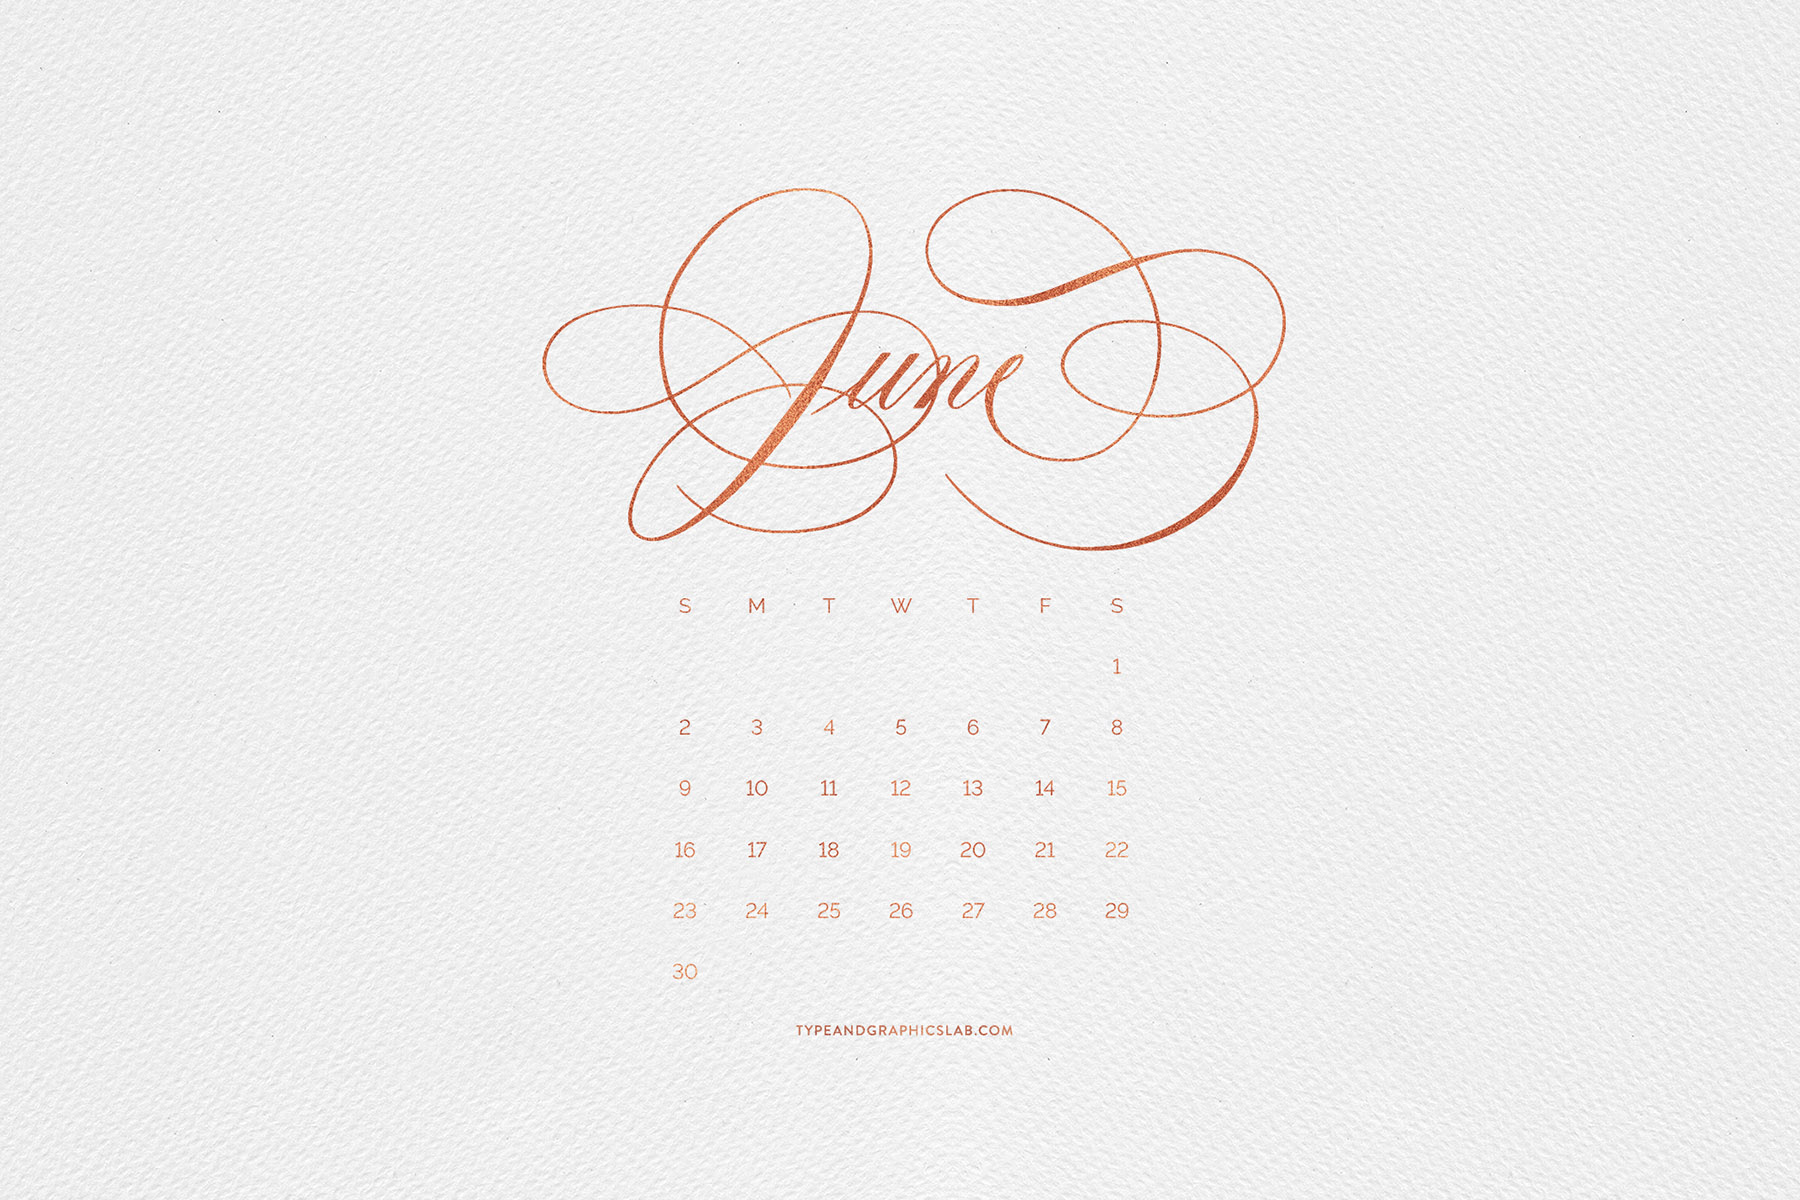 Free Calendar June 2019 Type And Graphics Lab